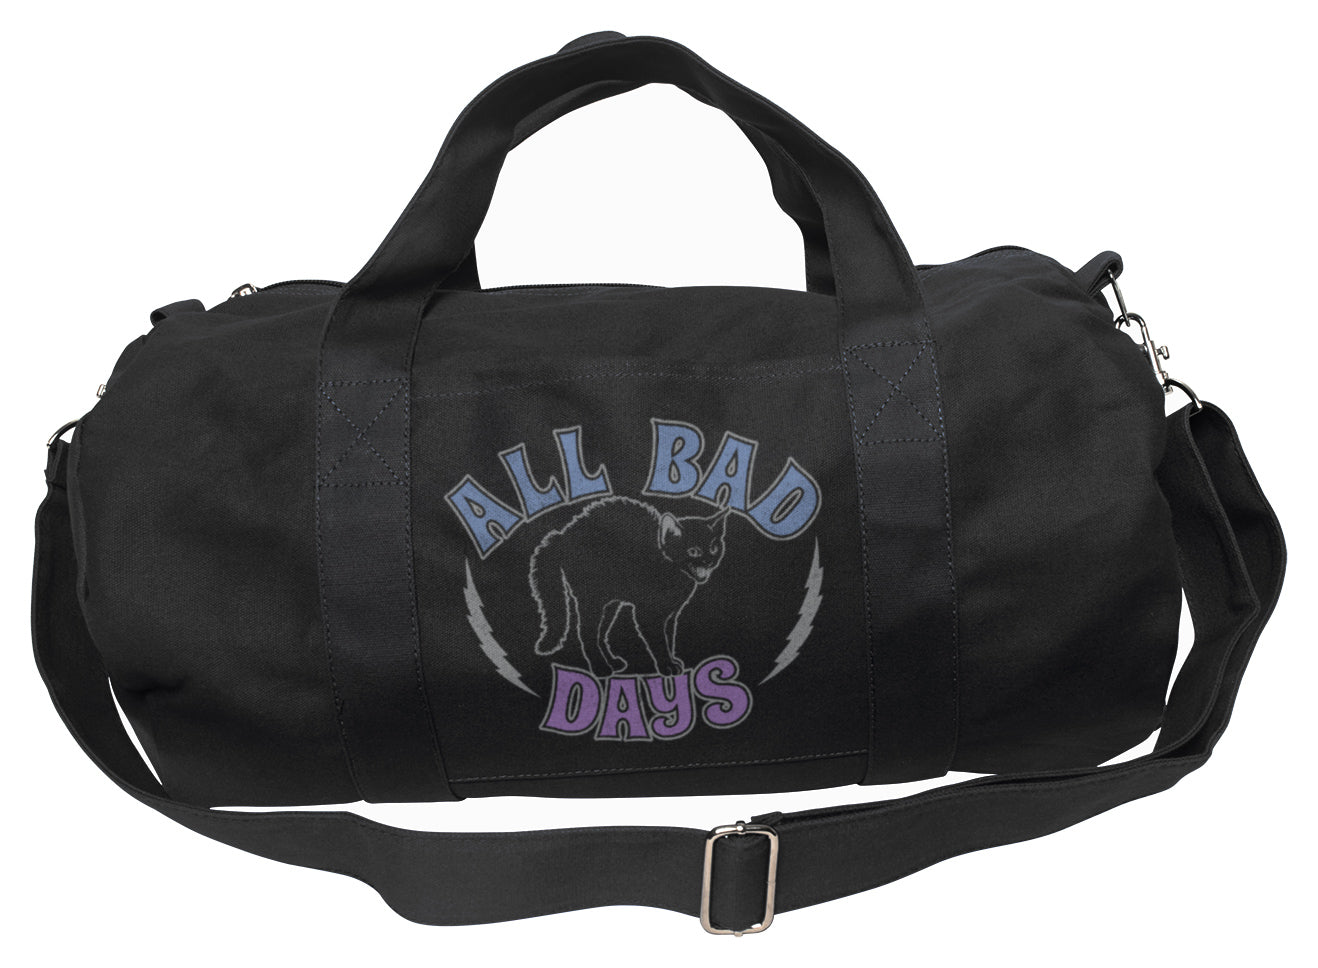 All Bad Days Duffel Bag